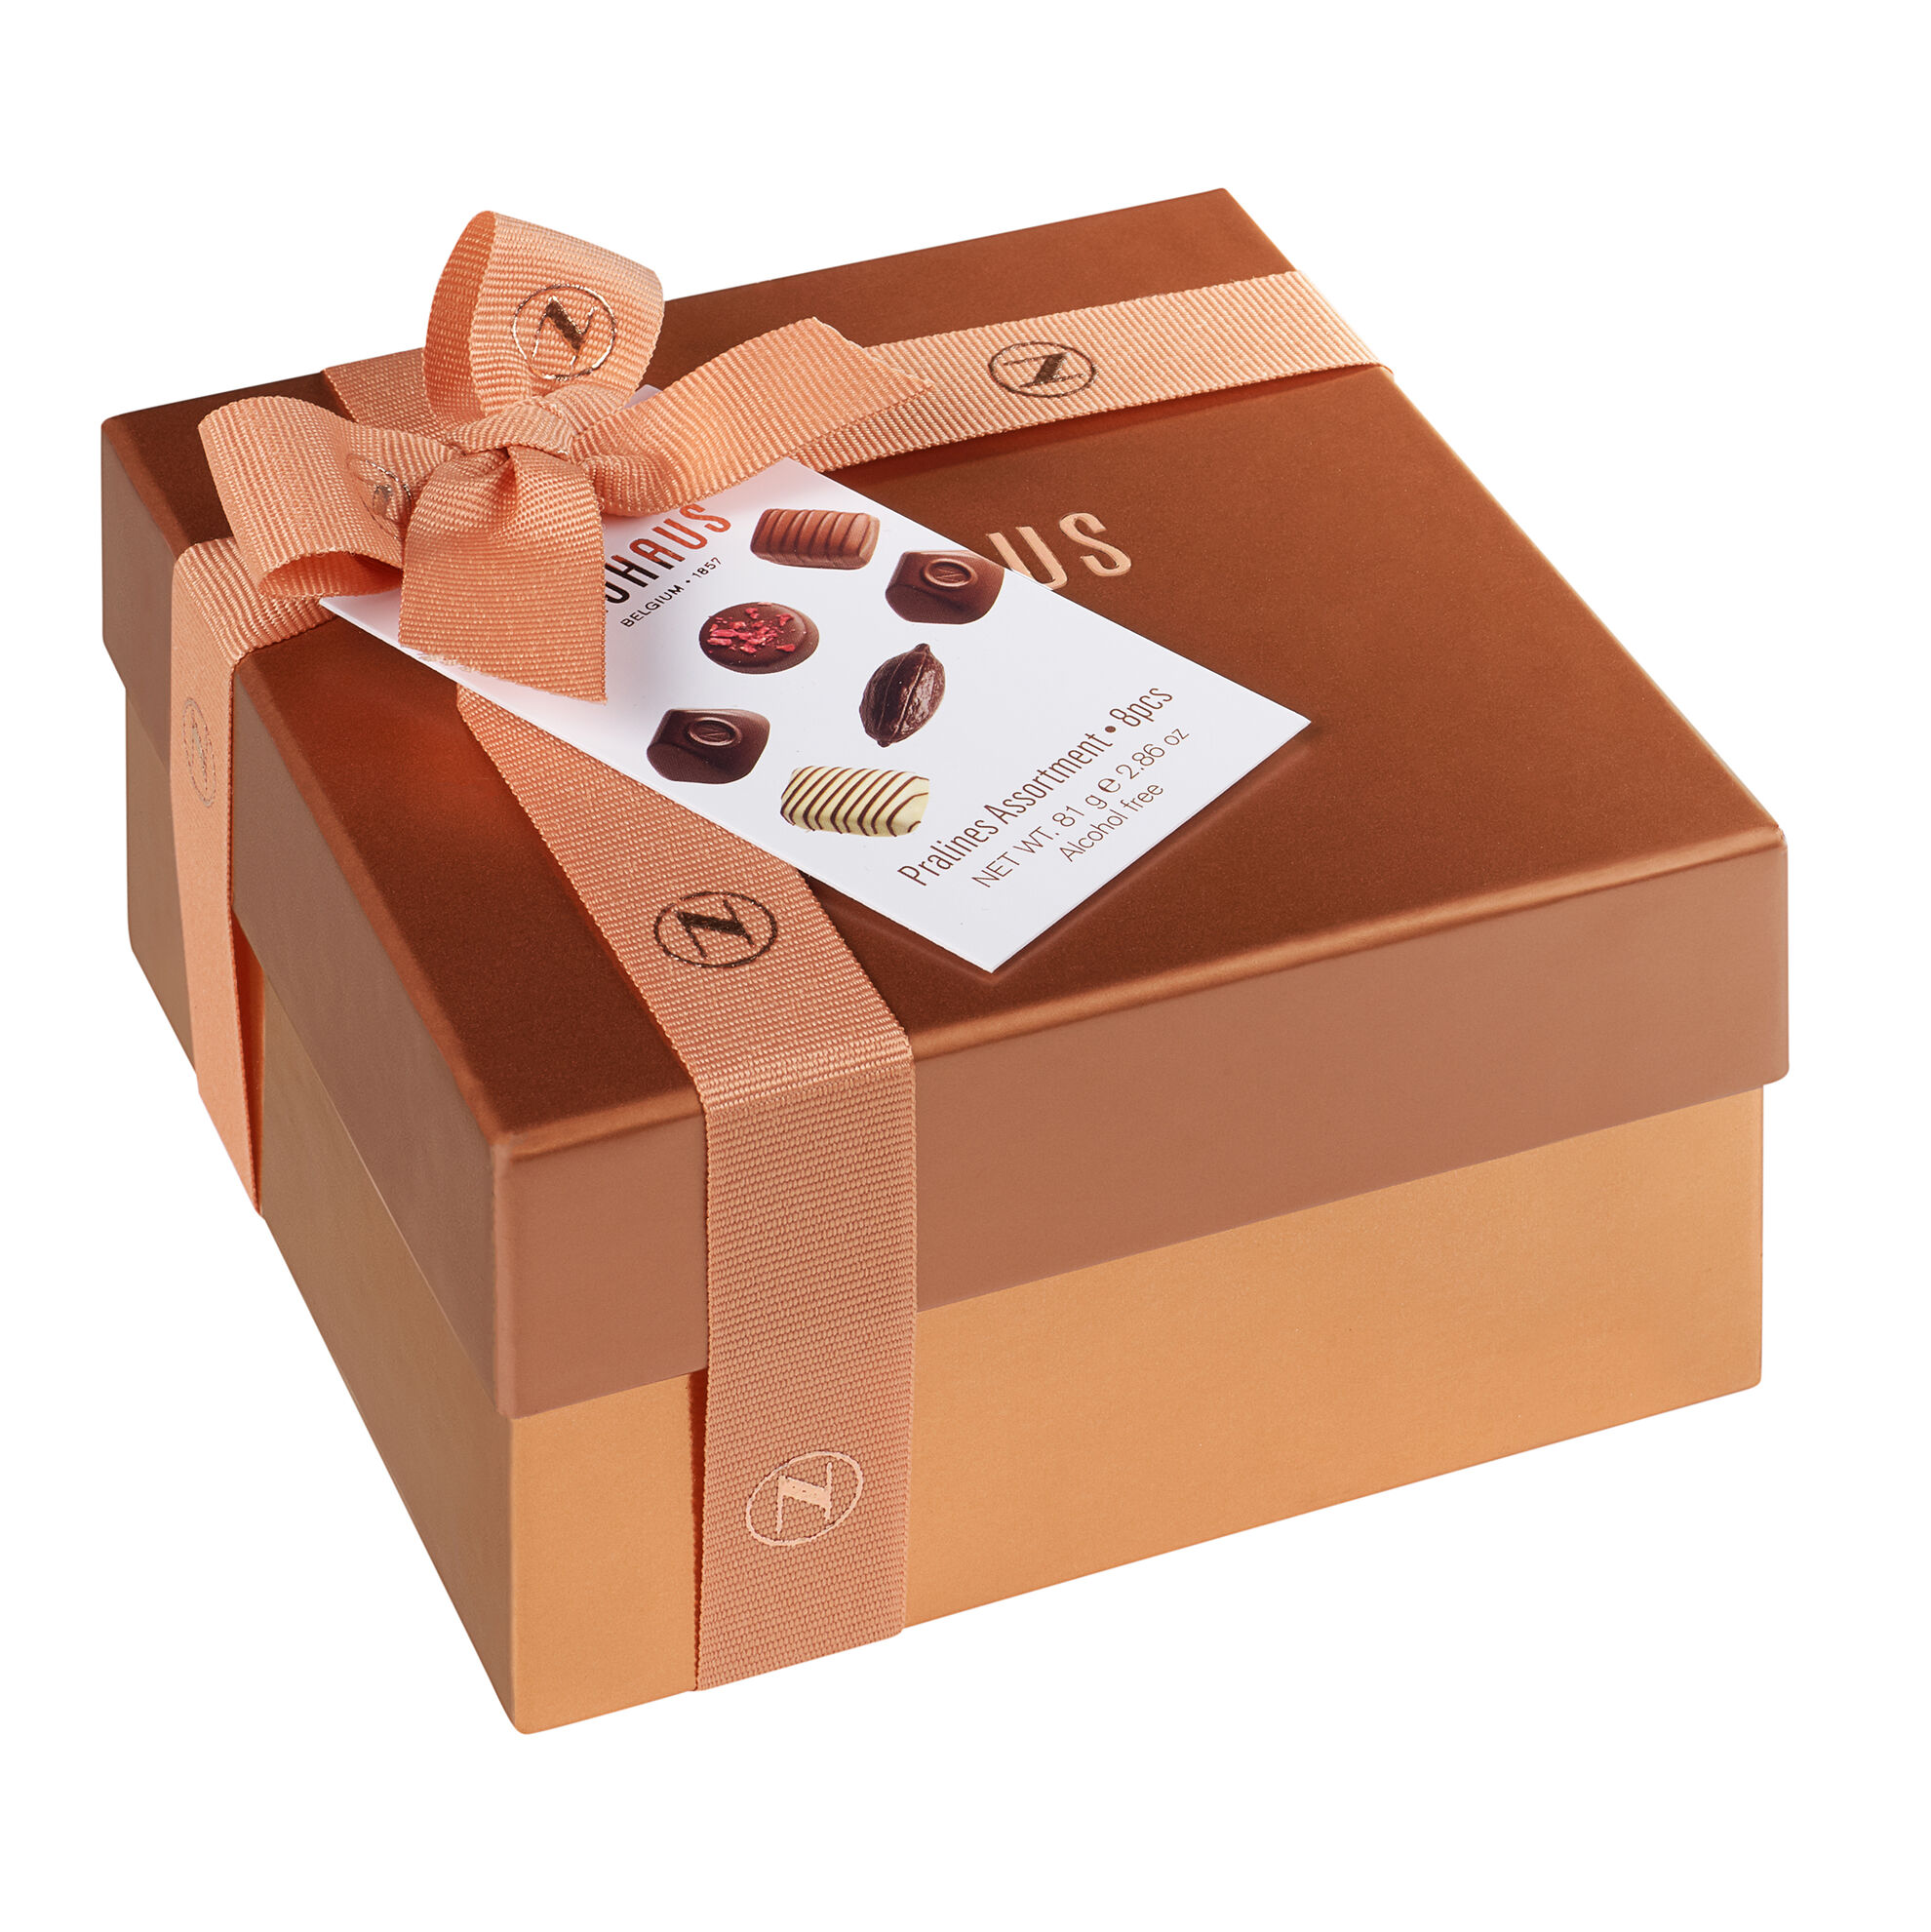 Small Square Gift Box With Ribbon 8 pcs image number 11